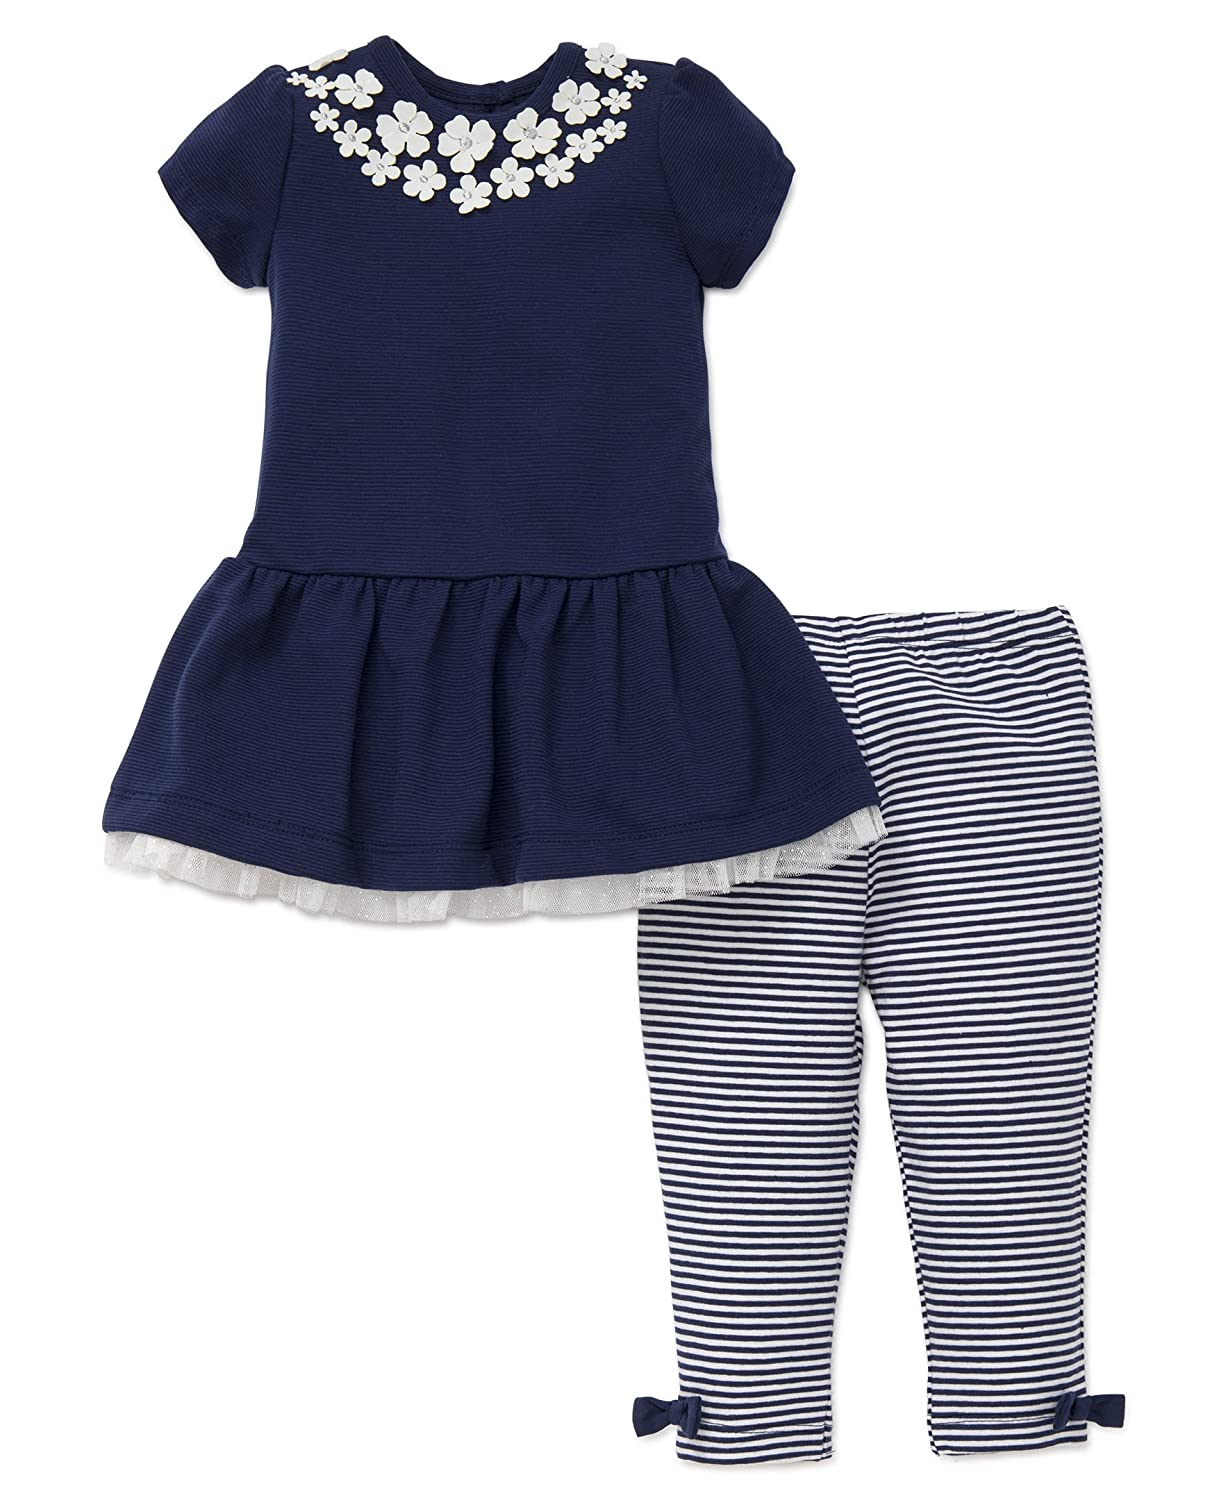 【大特価!!】 Little Me New DRESS ベビーガールズ Little 24 Months Navy DRESS New B075RNXQV2, アミュード:3e067386 --- a0267596.xsph.ru